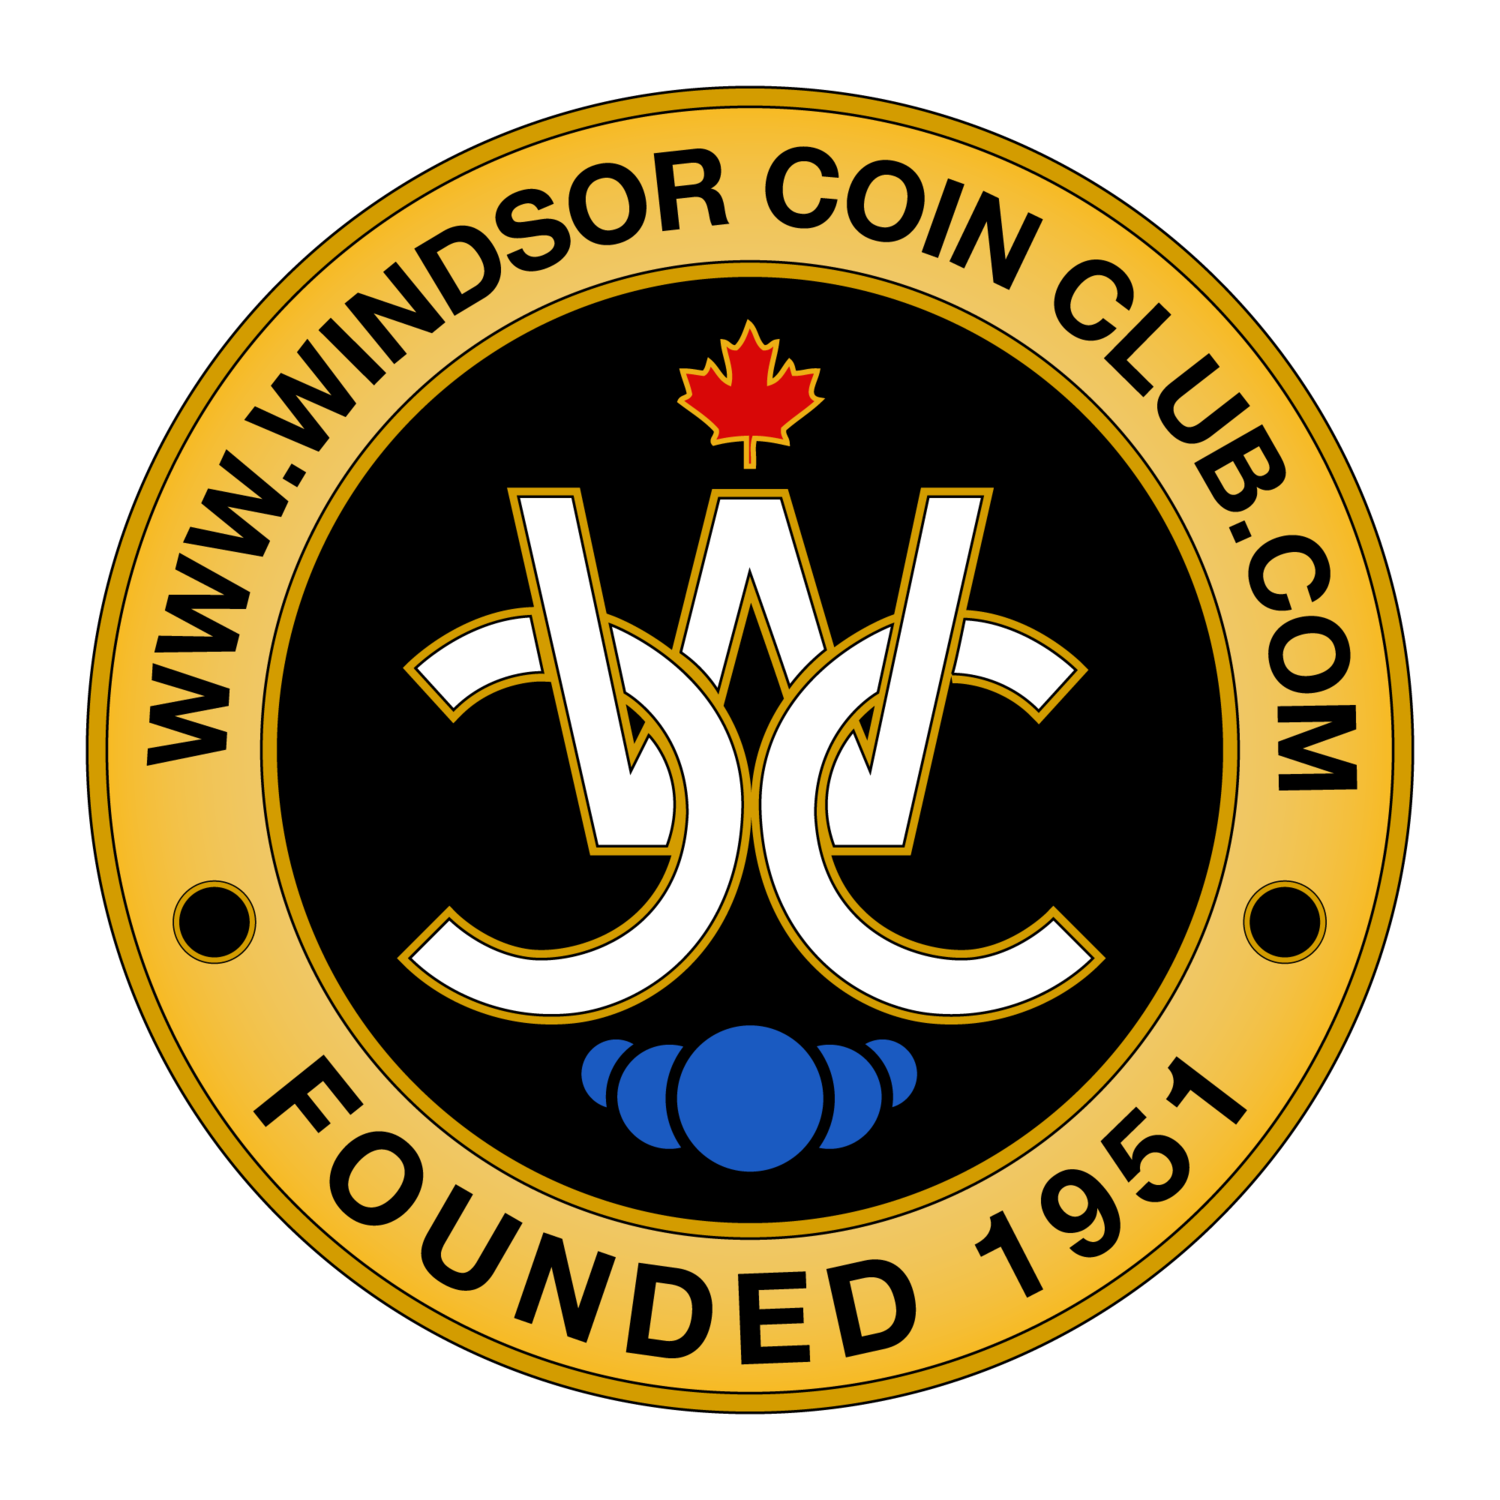 Windsor Coin Club